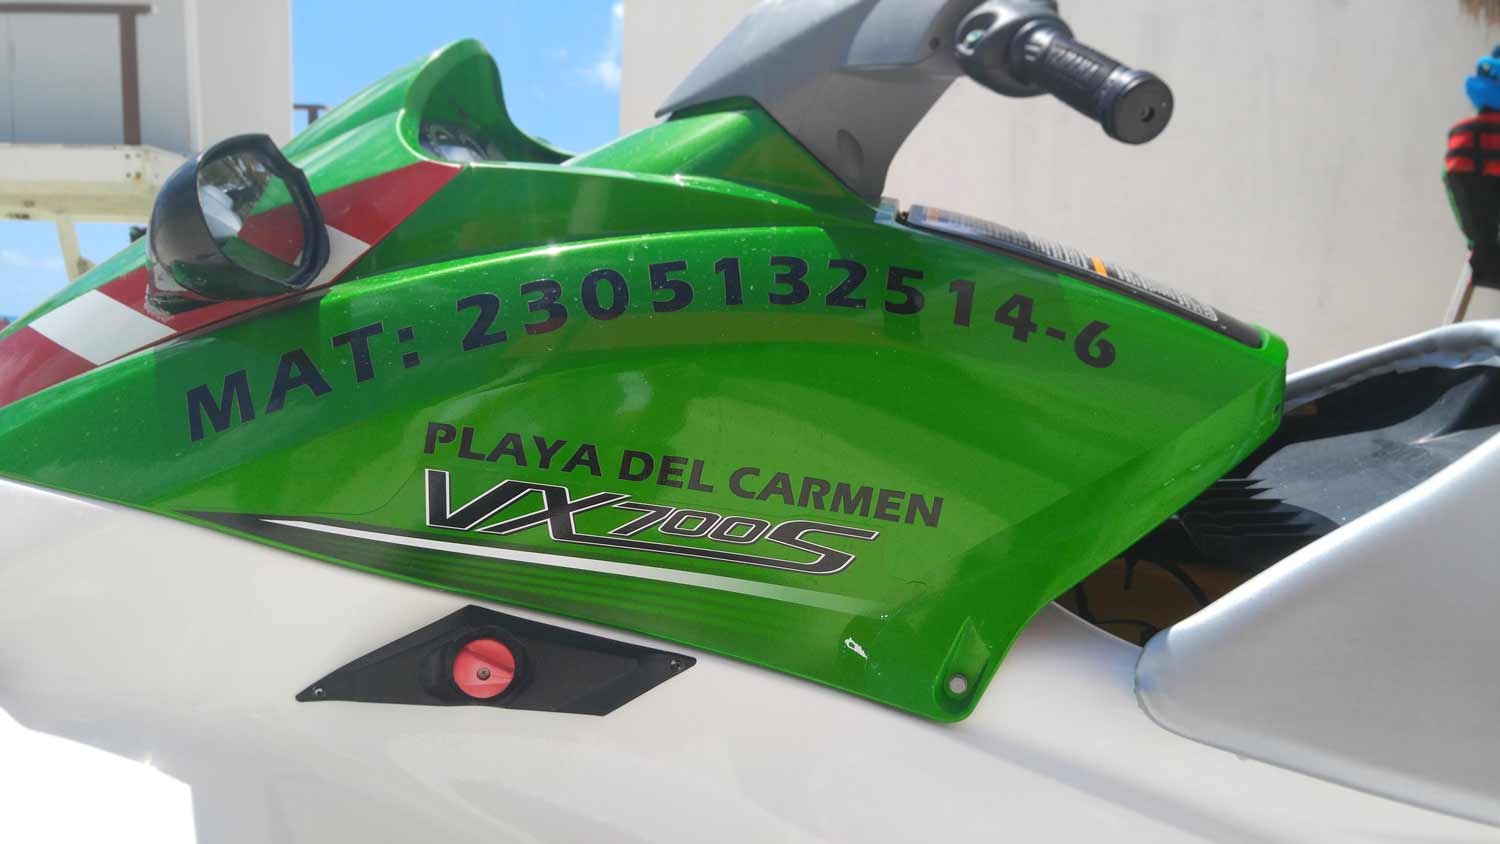 A jet ski that displays a license number and the words Playa Del Carmen written on the side.